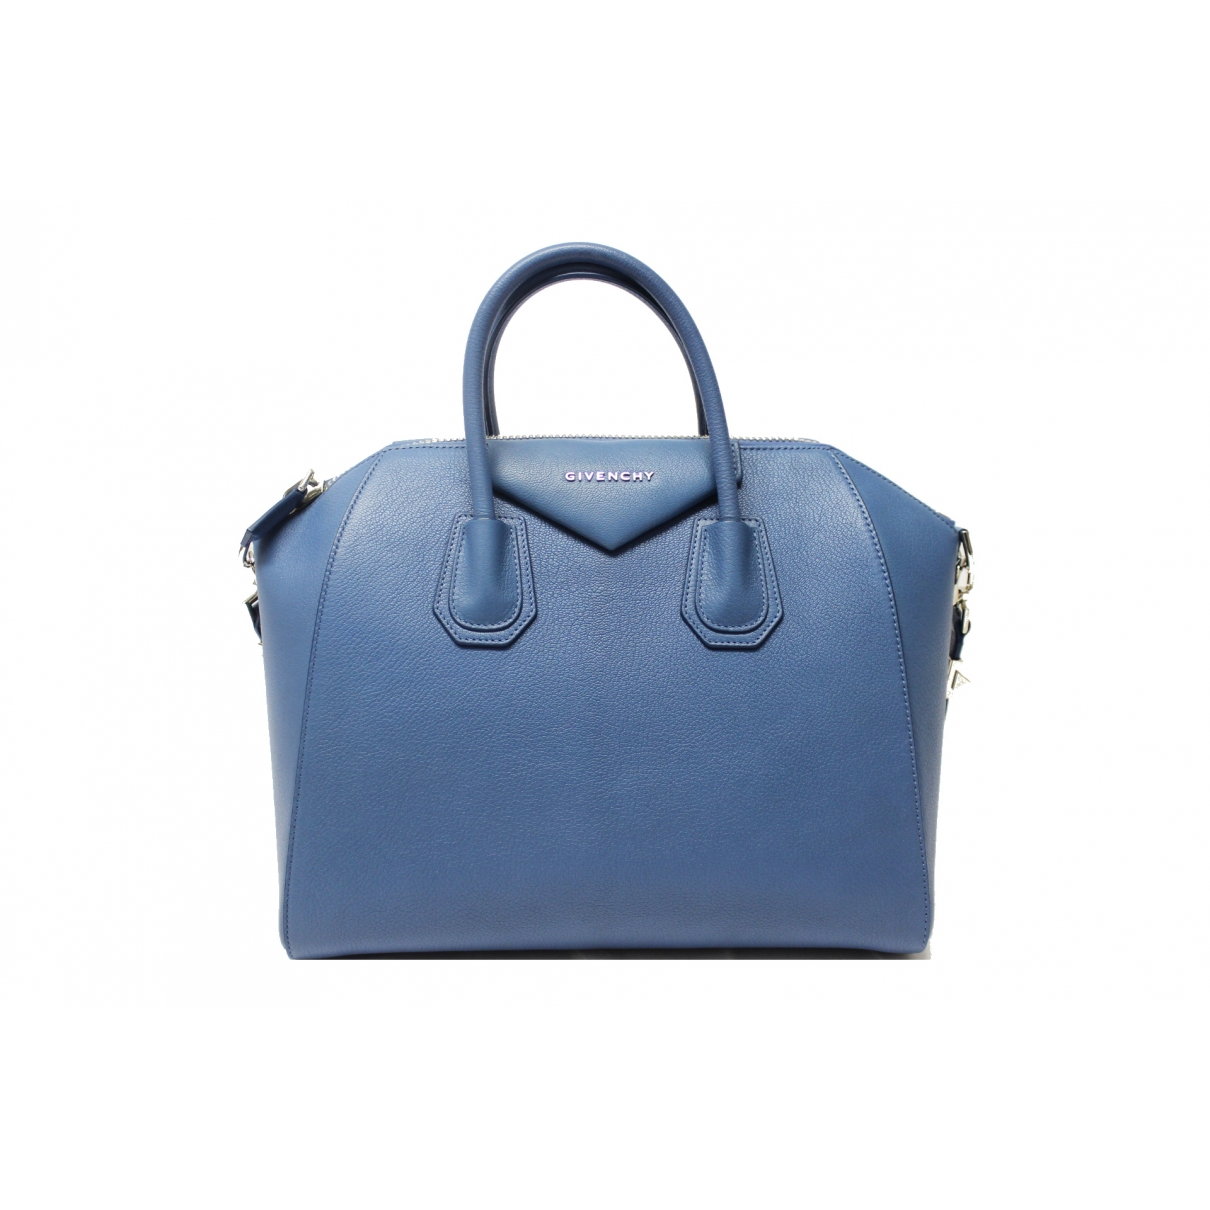 Givenchy Antigona Blue Leather handbag for Women \N